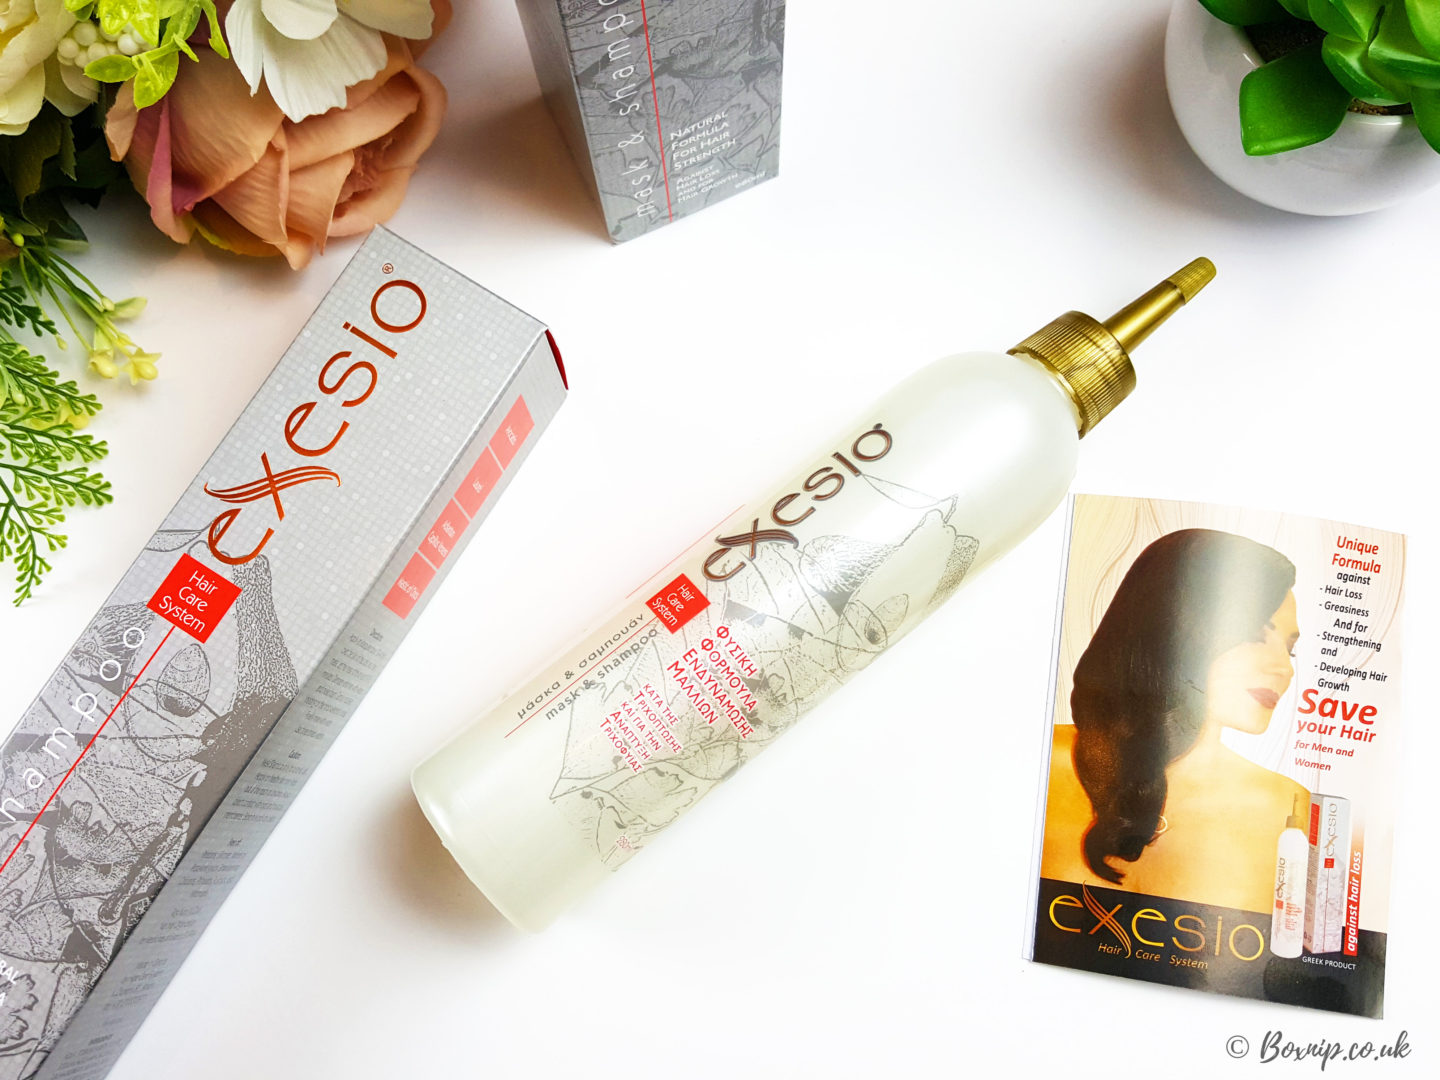 Exesio Hair Care System Review